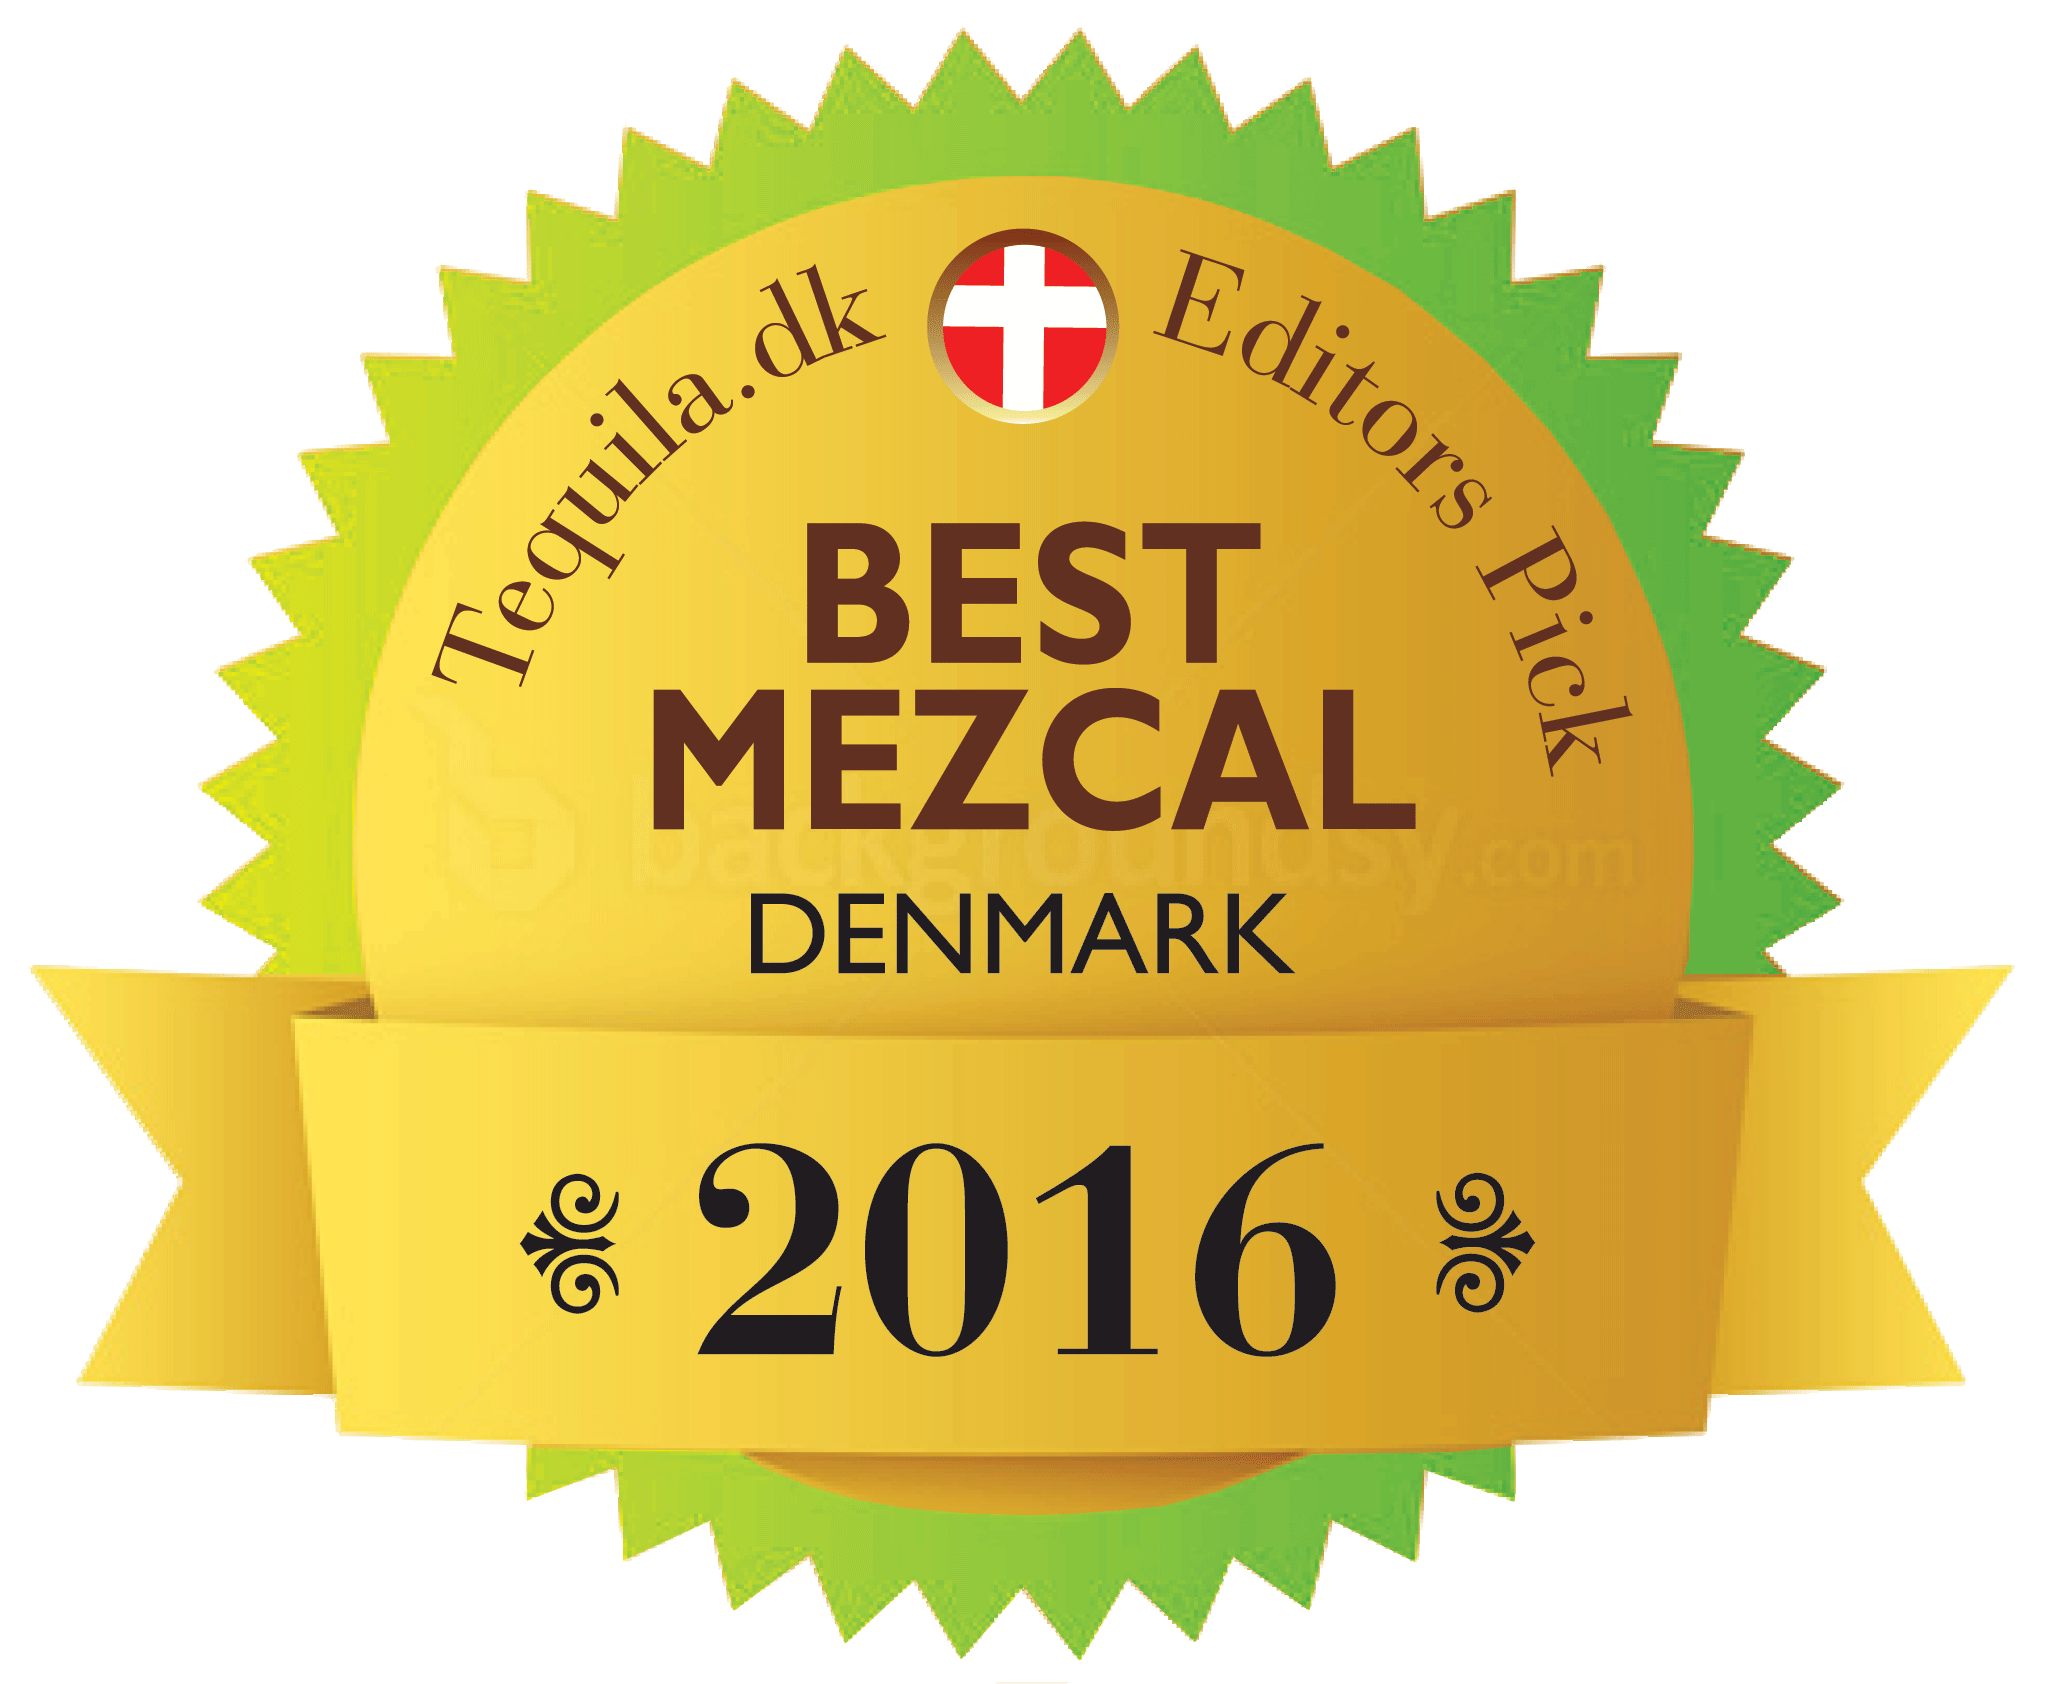 Best Mezcal in Denmark 2016